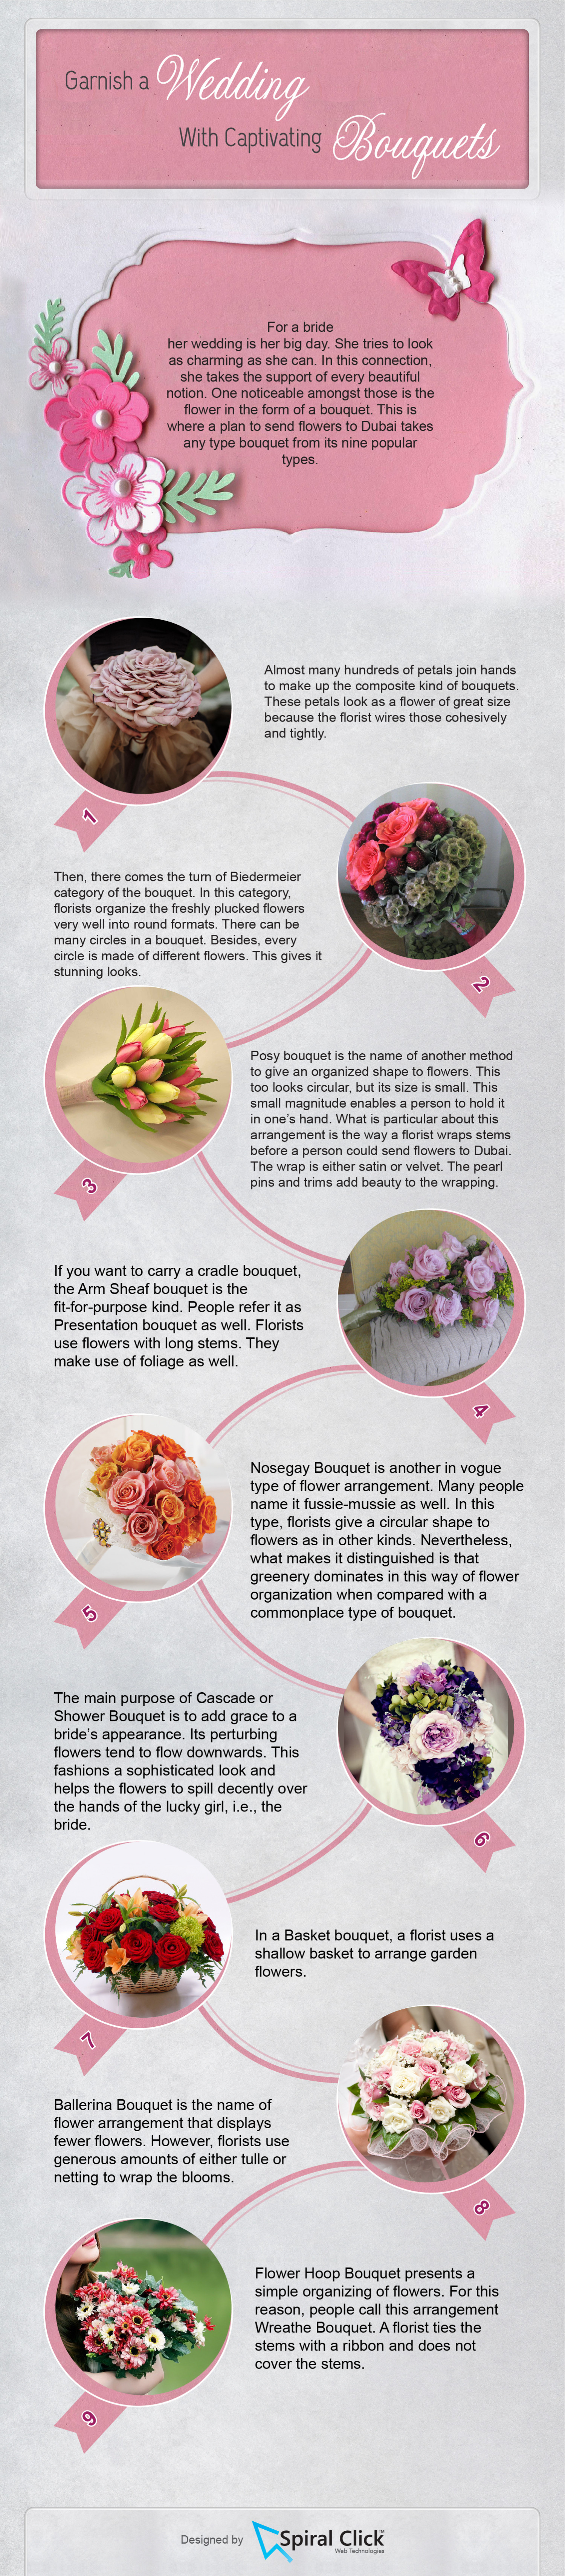 Wedding Flowers With Captivating Bouquets - Infographics Infographic